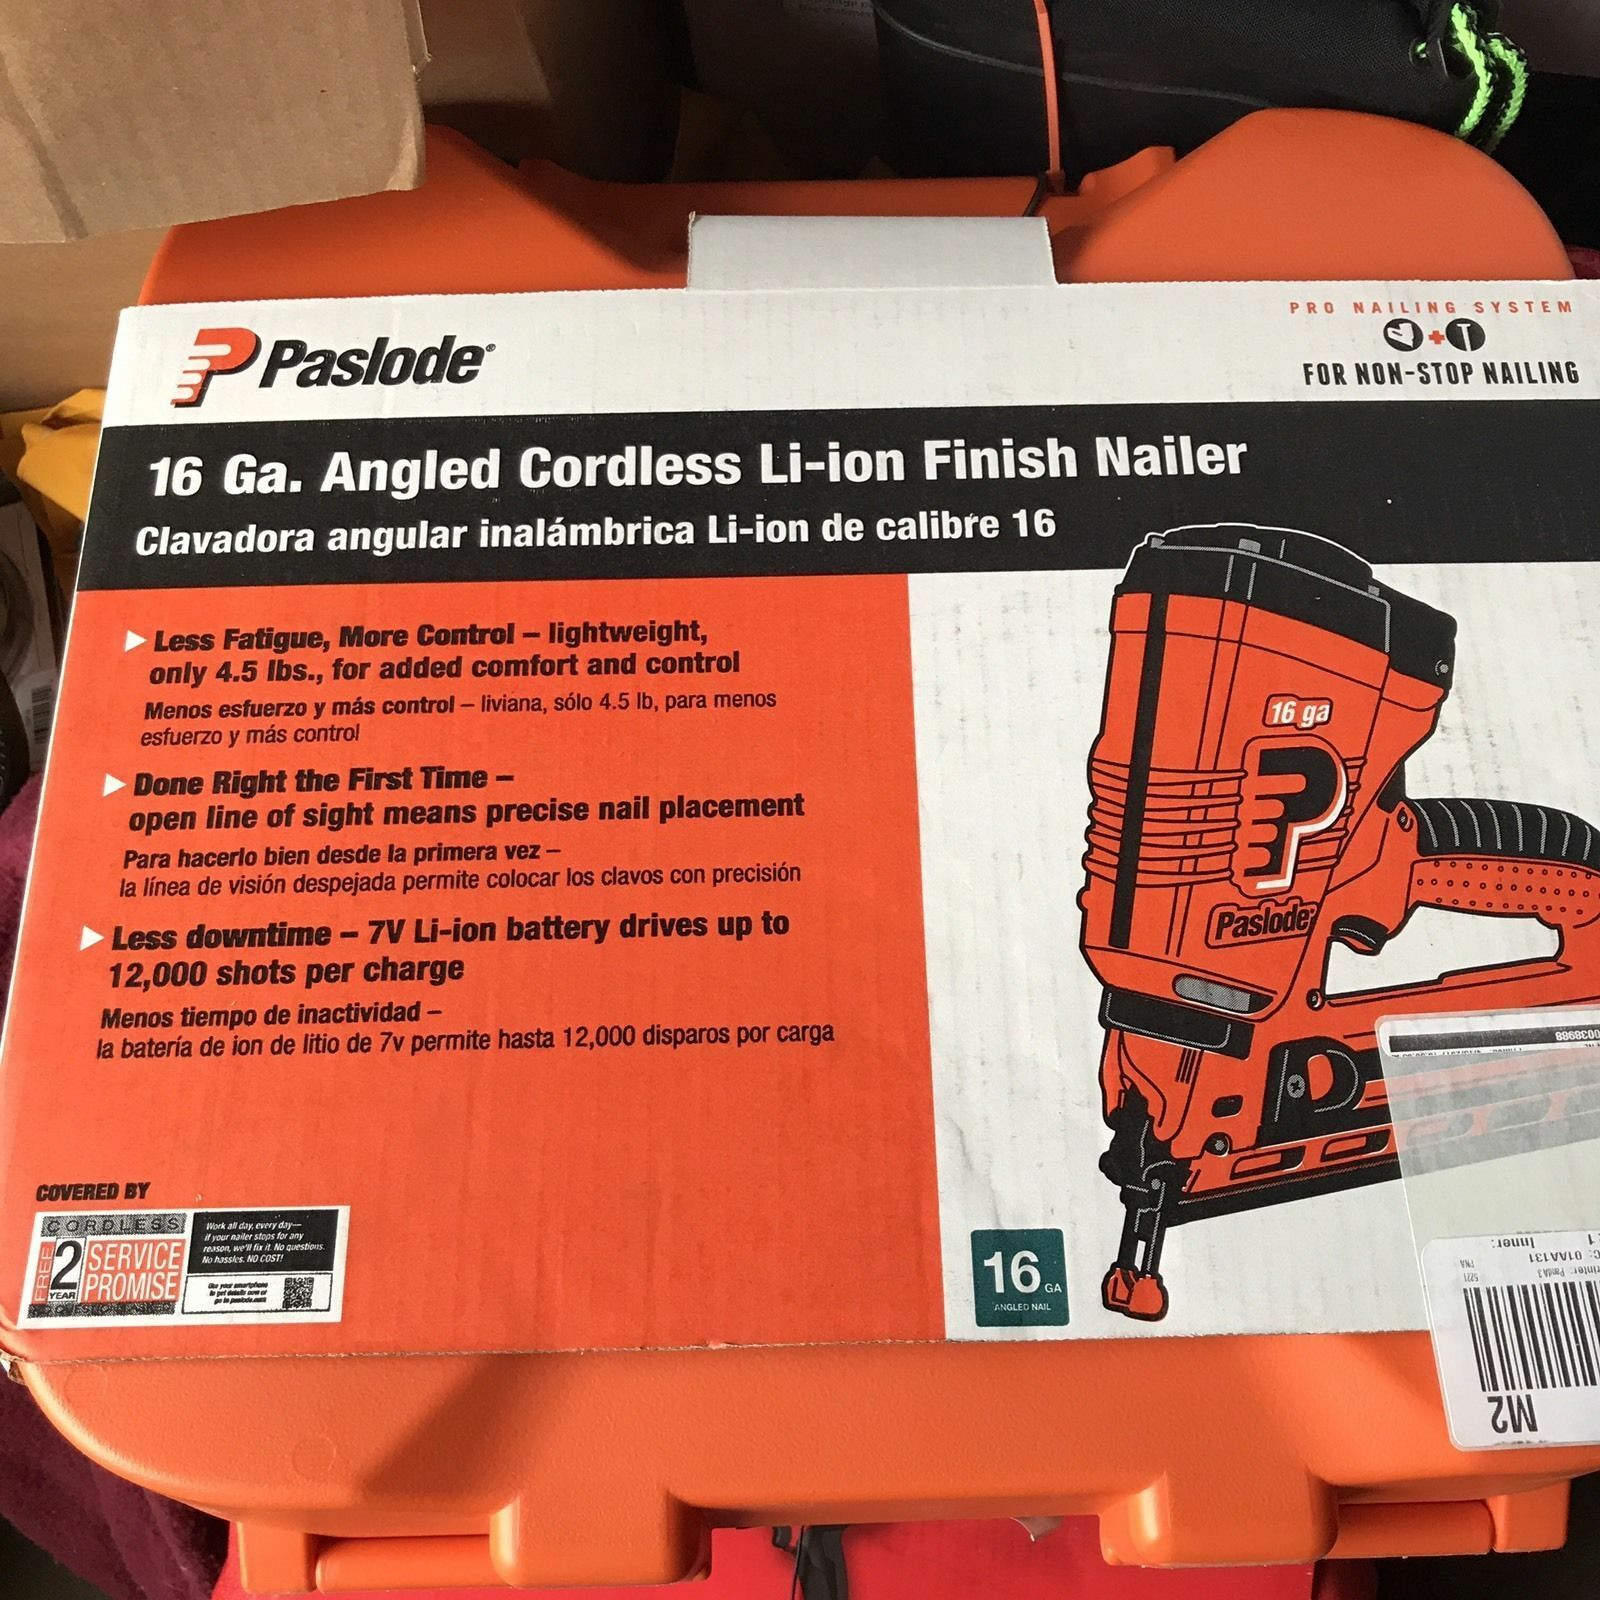 Paslode IM250ALi 16 Gauge Angled Cordless Finish Nailer 902400 .[..,. Buy it now for 279.99